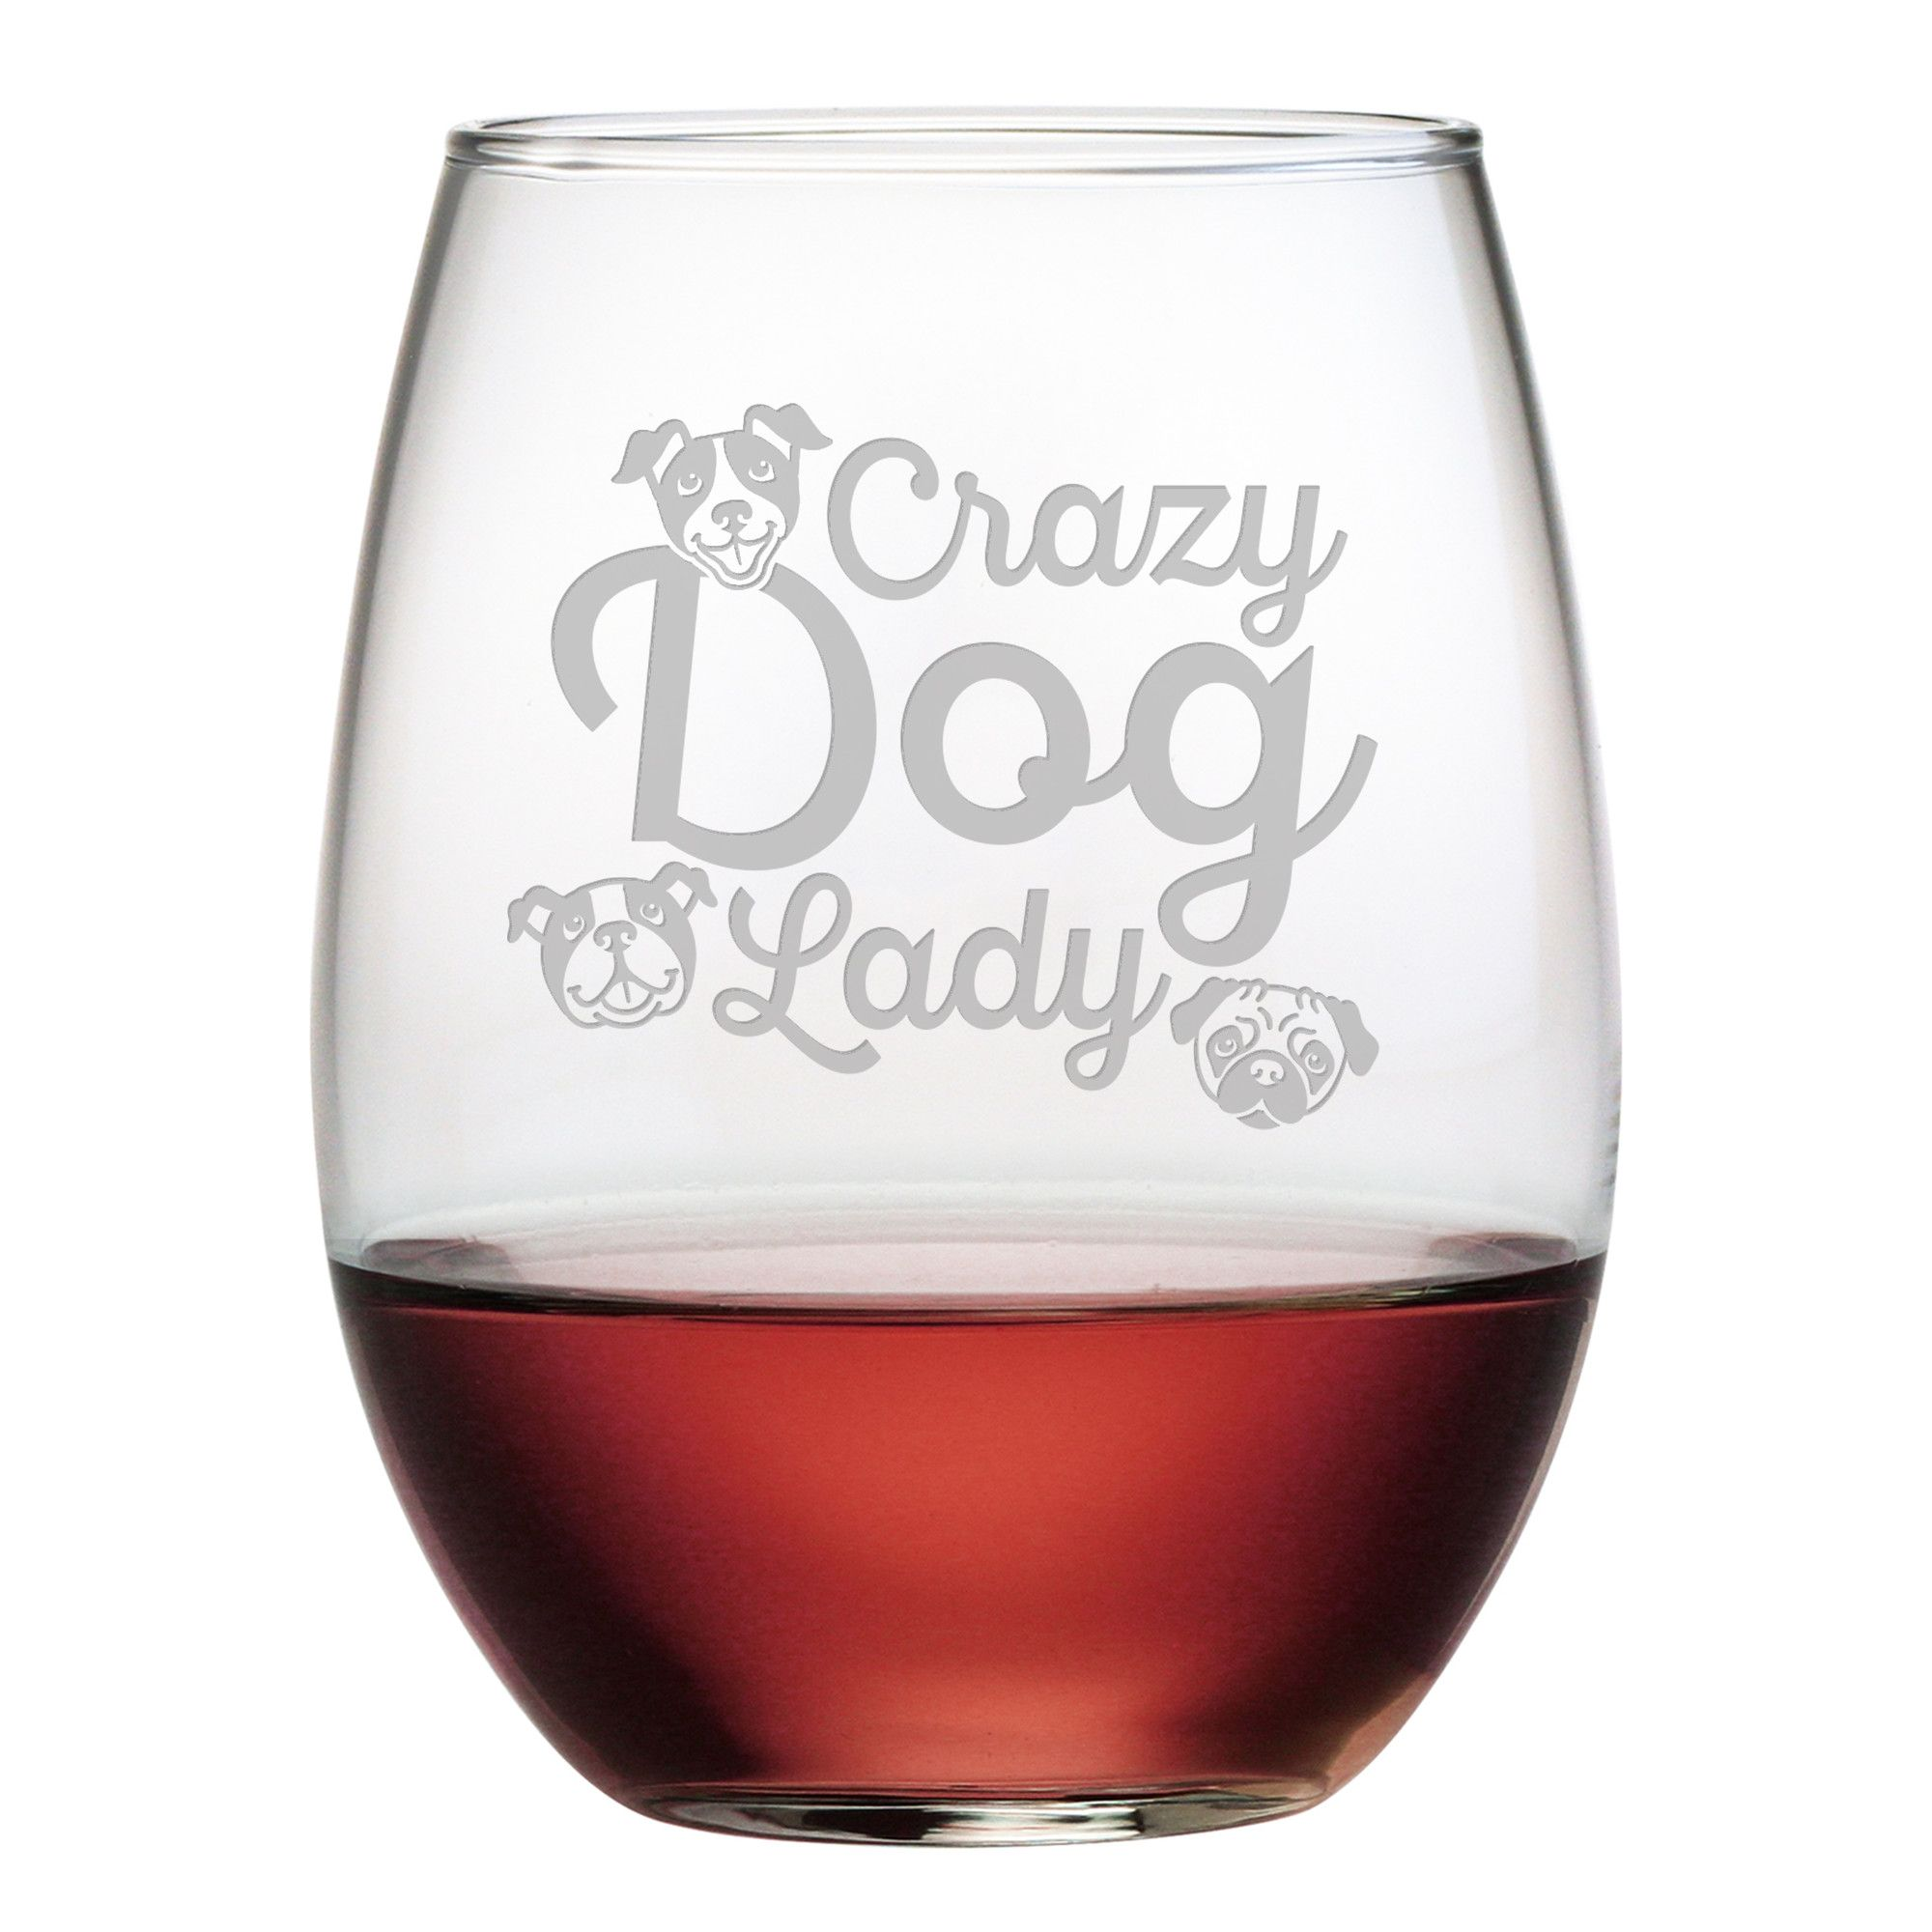 Crazy Dog Lady 21 Oz Stemless Wine Glass Wine Glass Wine Glass Set Stemless Wine Glass